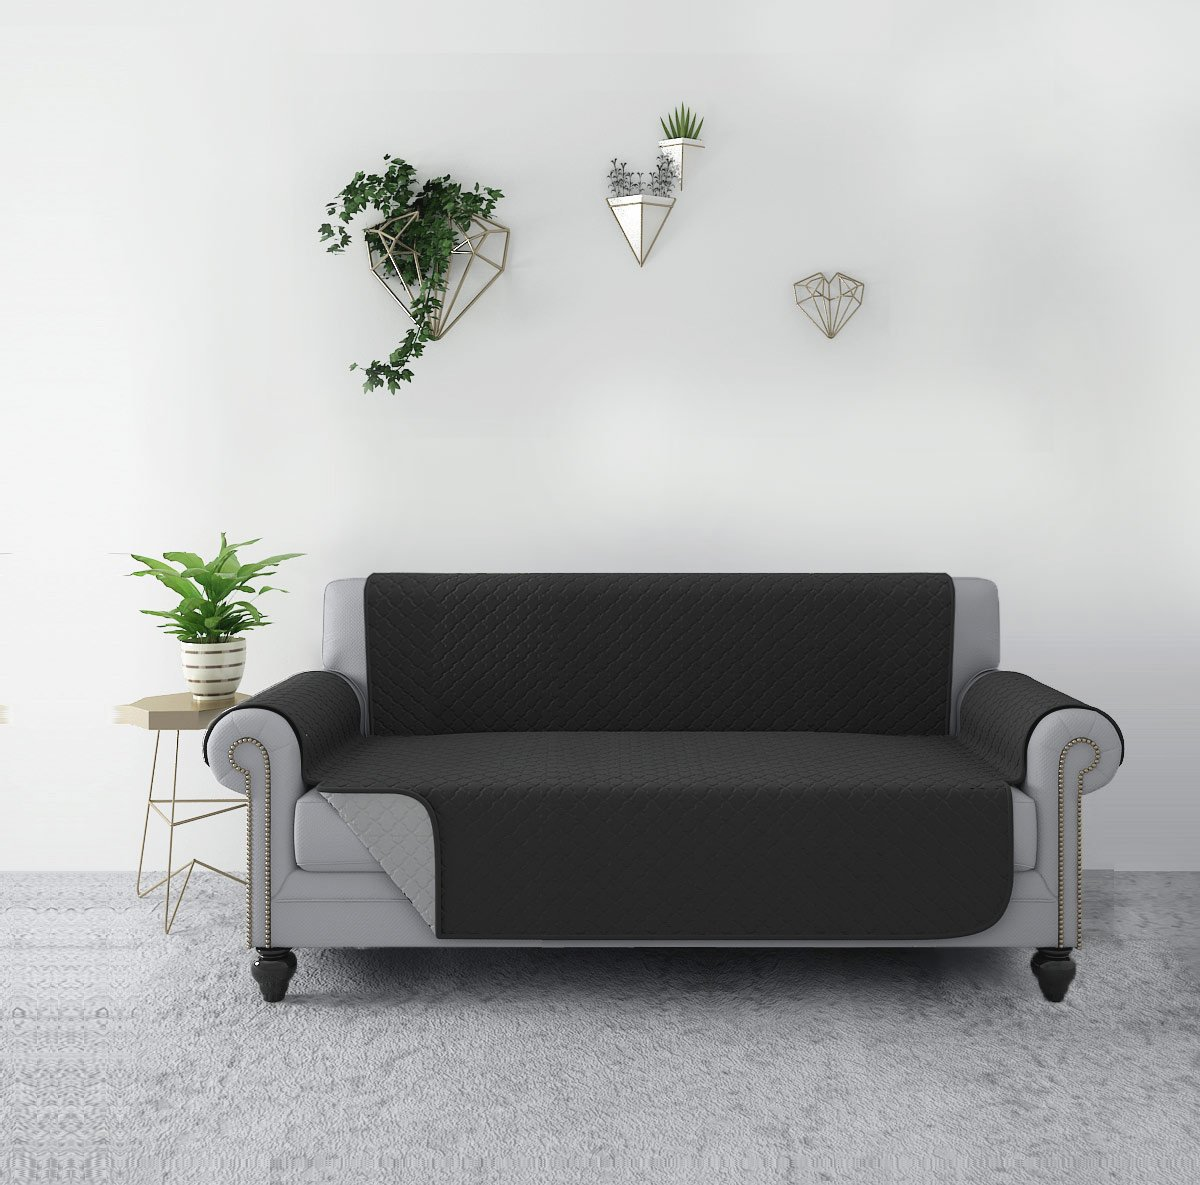 Cheap Couch Cover Black Find Couch Cover Black Deals On Line At Alibaba Com